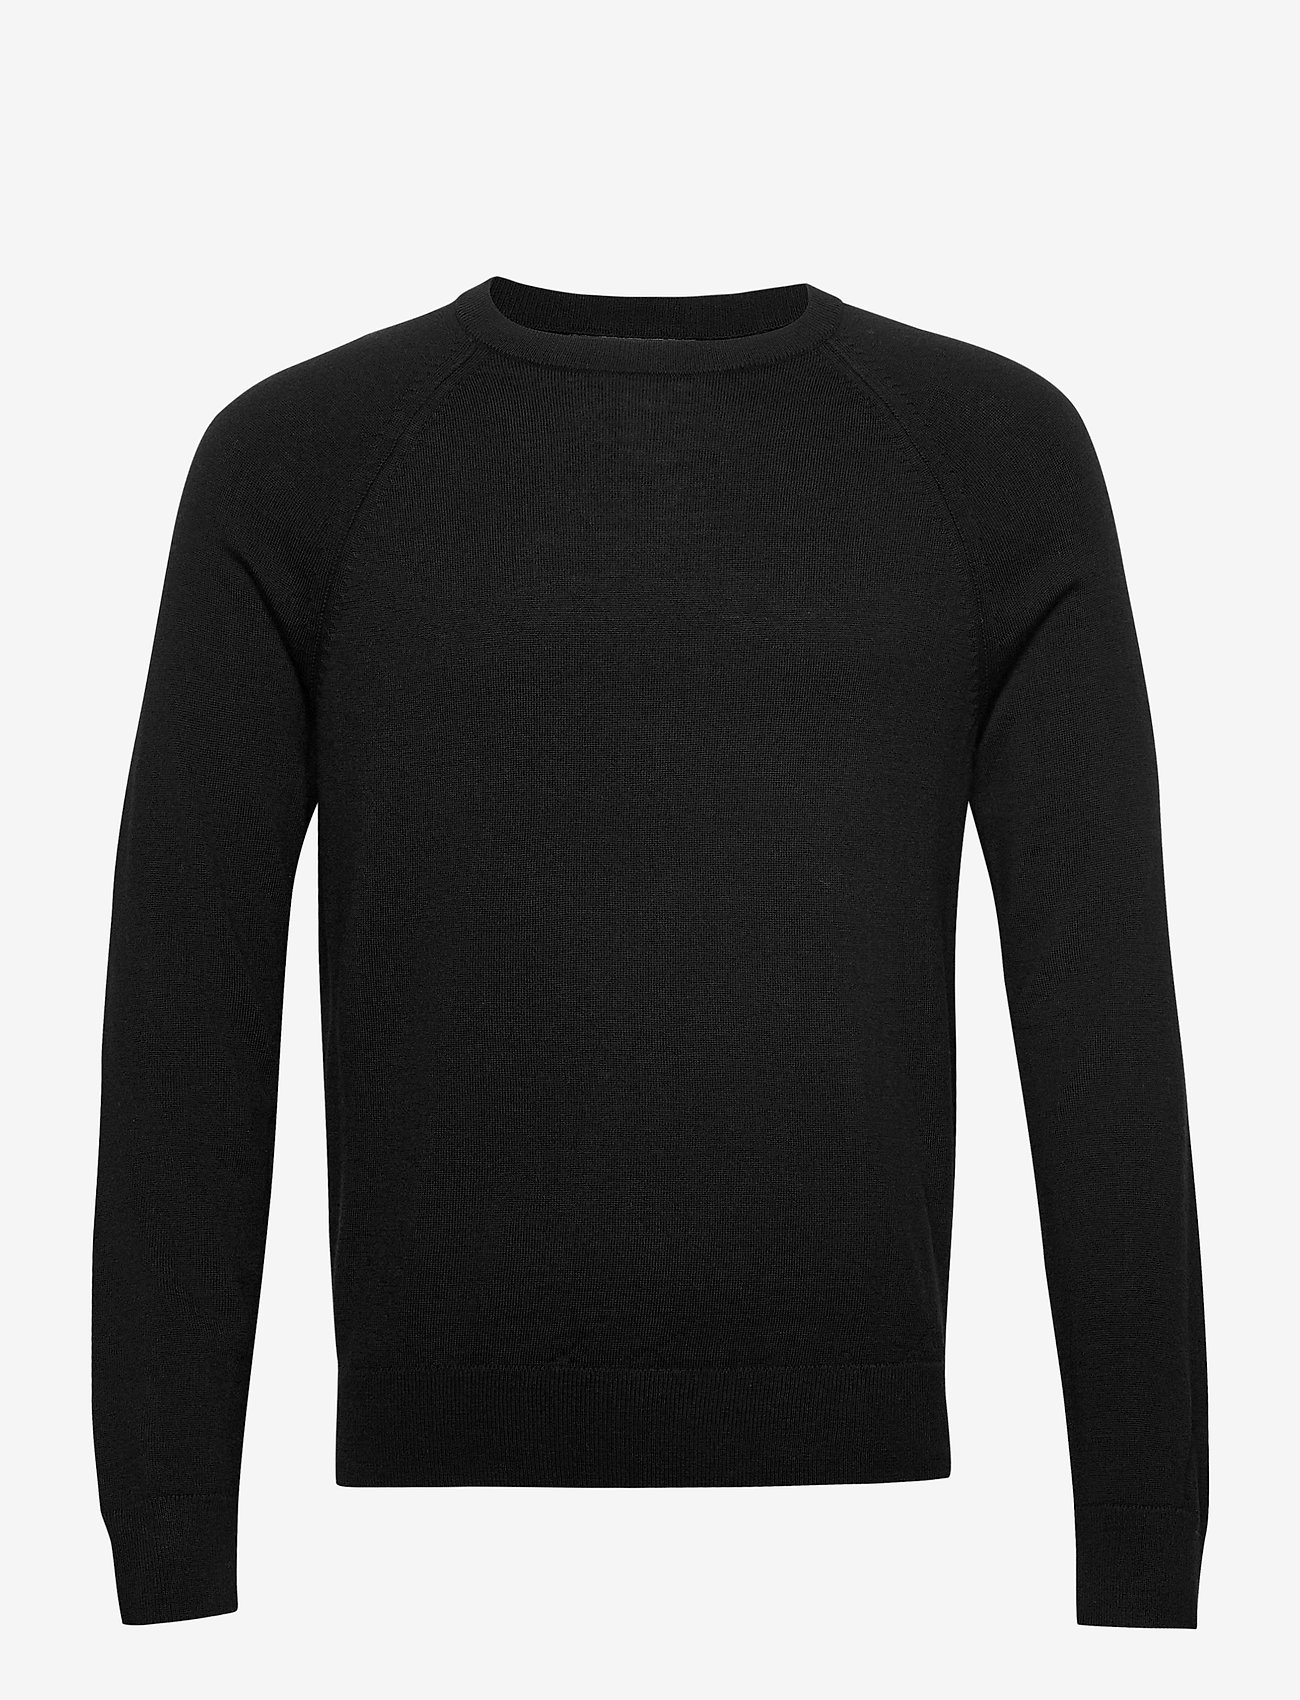 Banana Republic - Italian Merino Crew-Neck Sweater - basic knitwear - black - 0